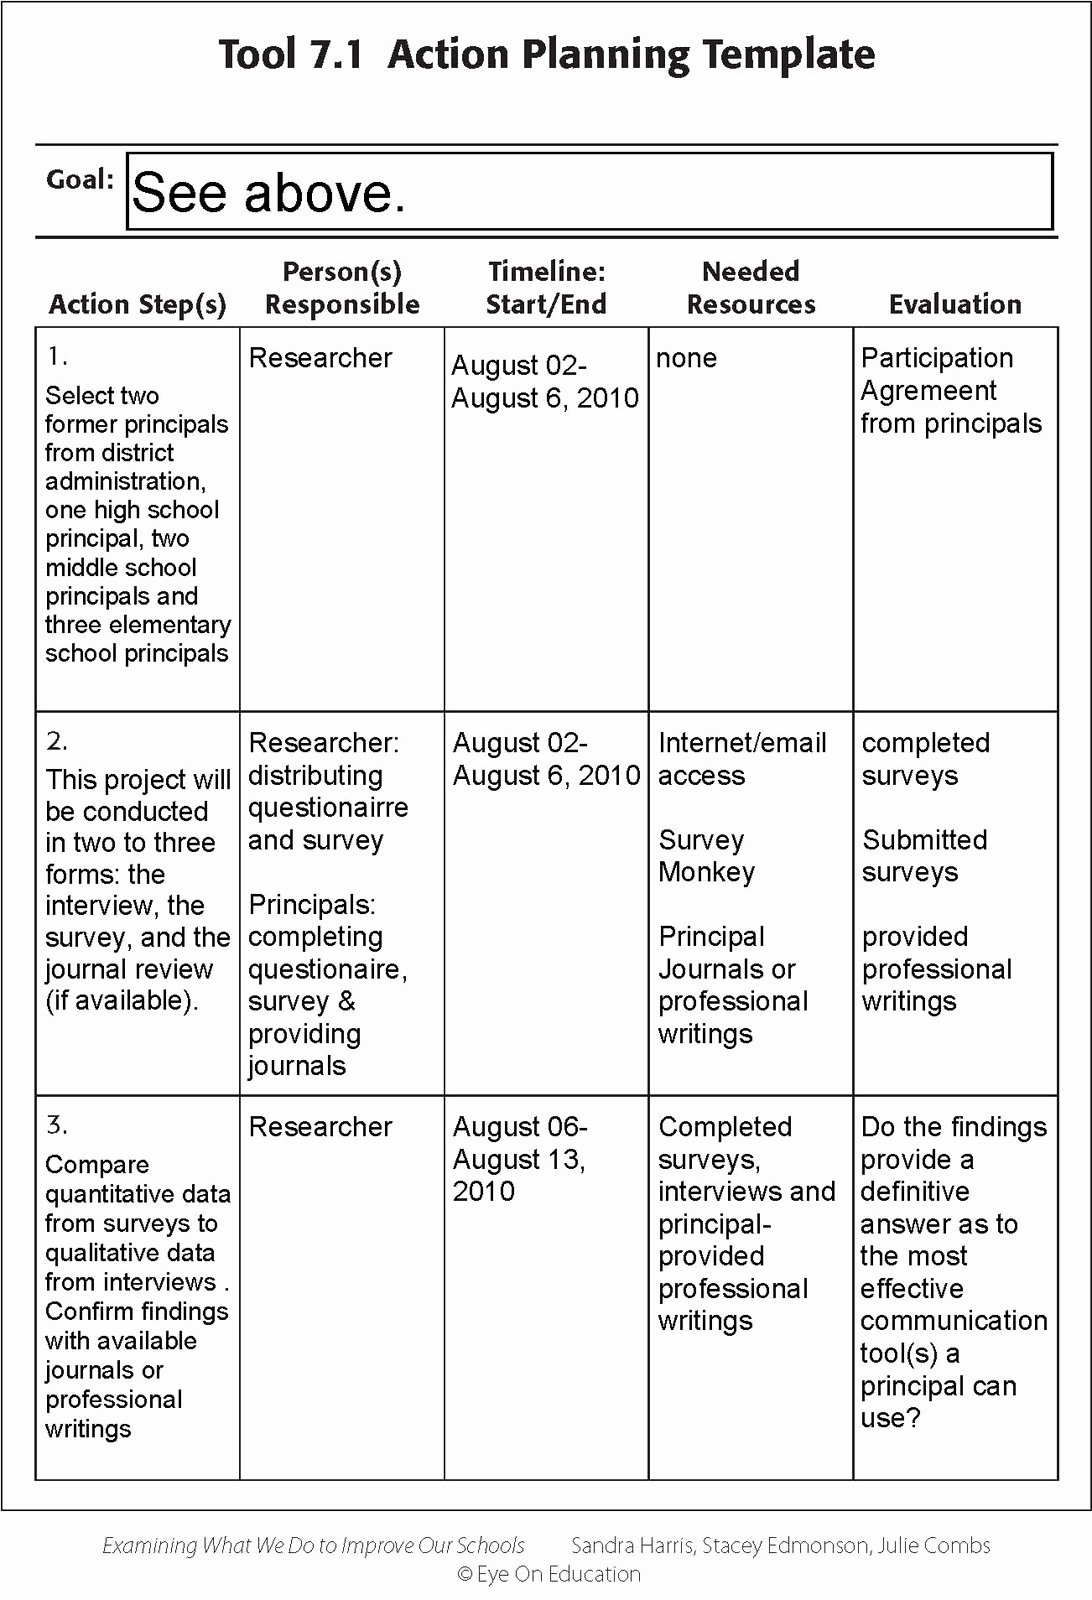 Action Plan Template for Students Lovely the Tech Student Blog Reloaded Sample Action Research Plan